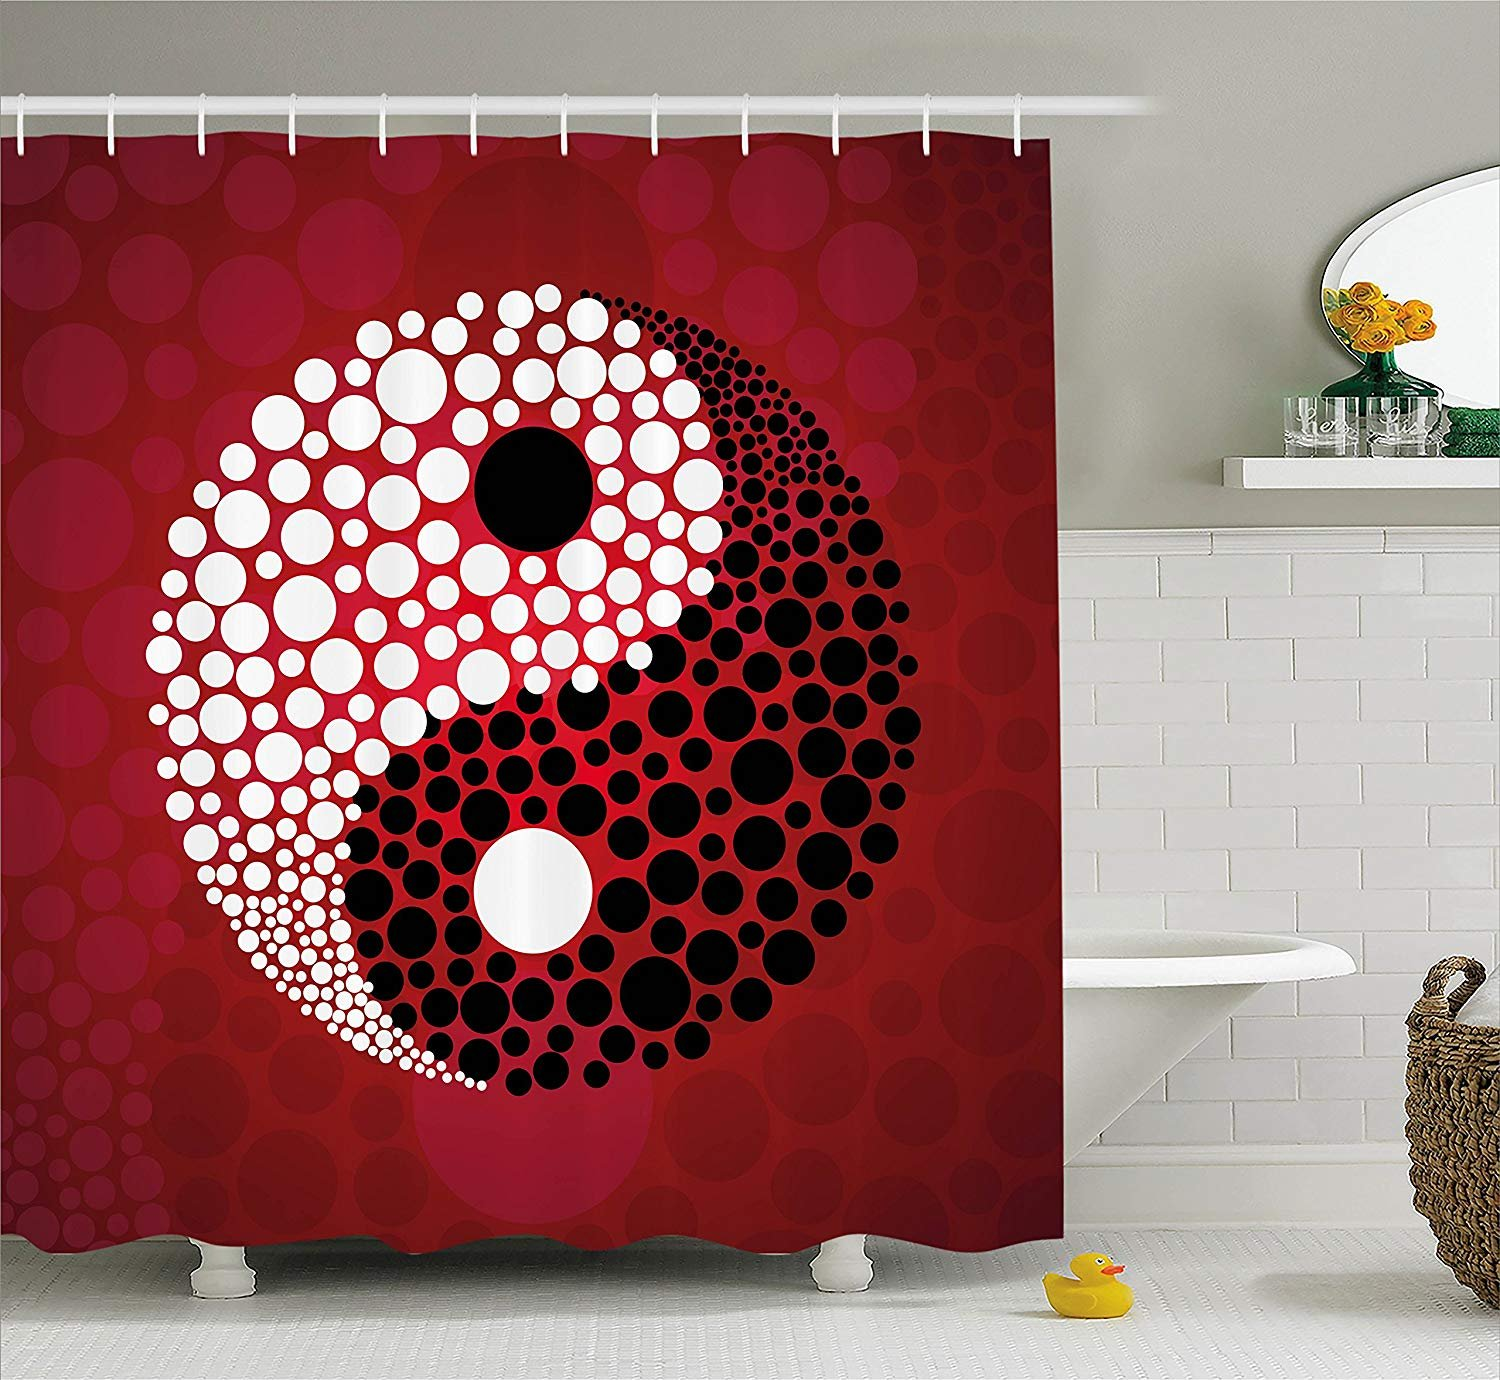 Jagfhhs Ying Yang Decor Shower Curtain Set Abstract Graphic